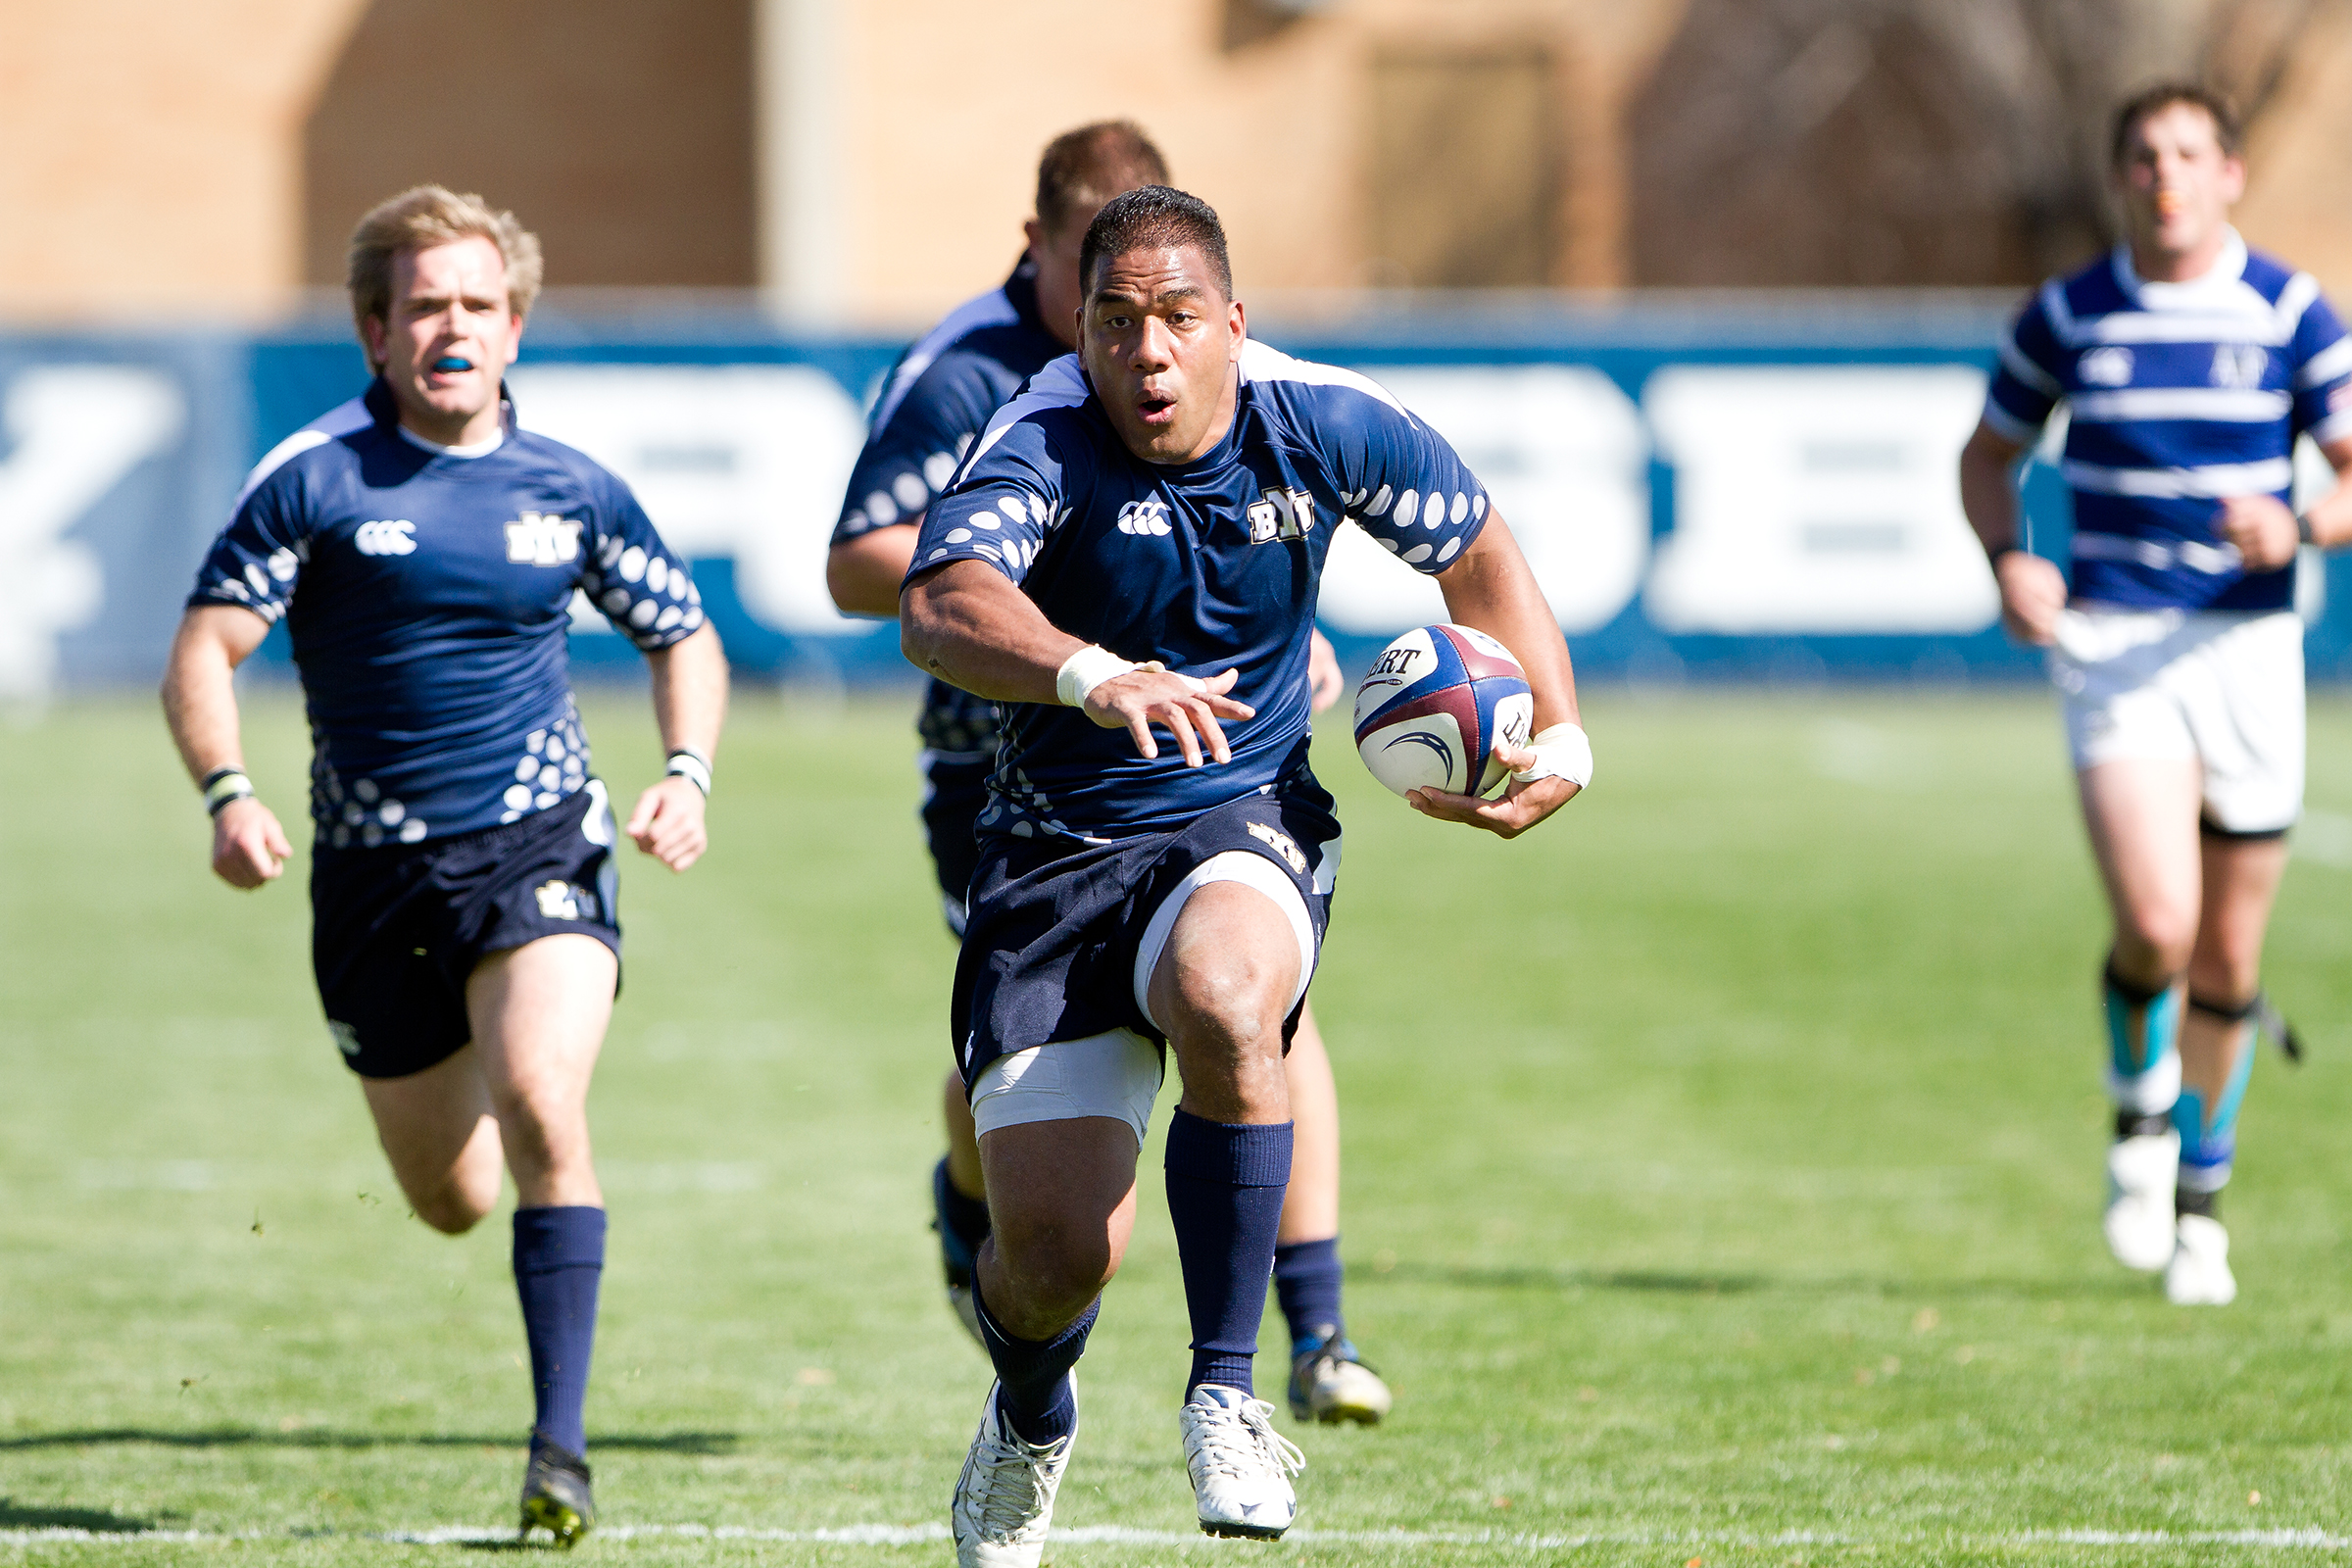 A BYU player runs for a try during a game at South Field against Air Force. Photo by Sarah Hill.